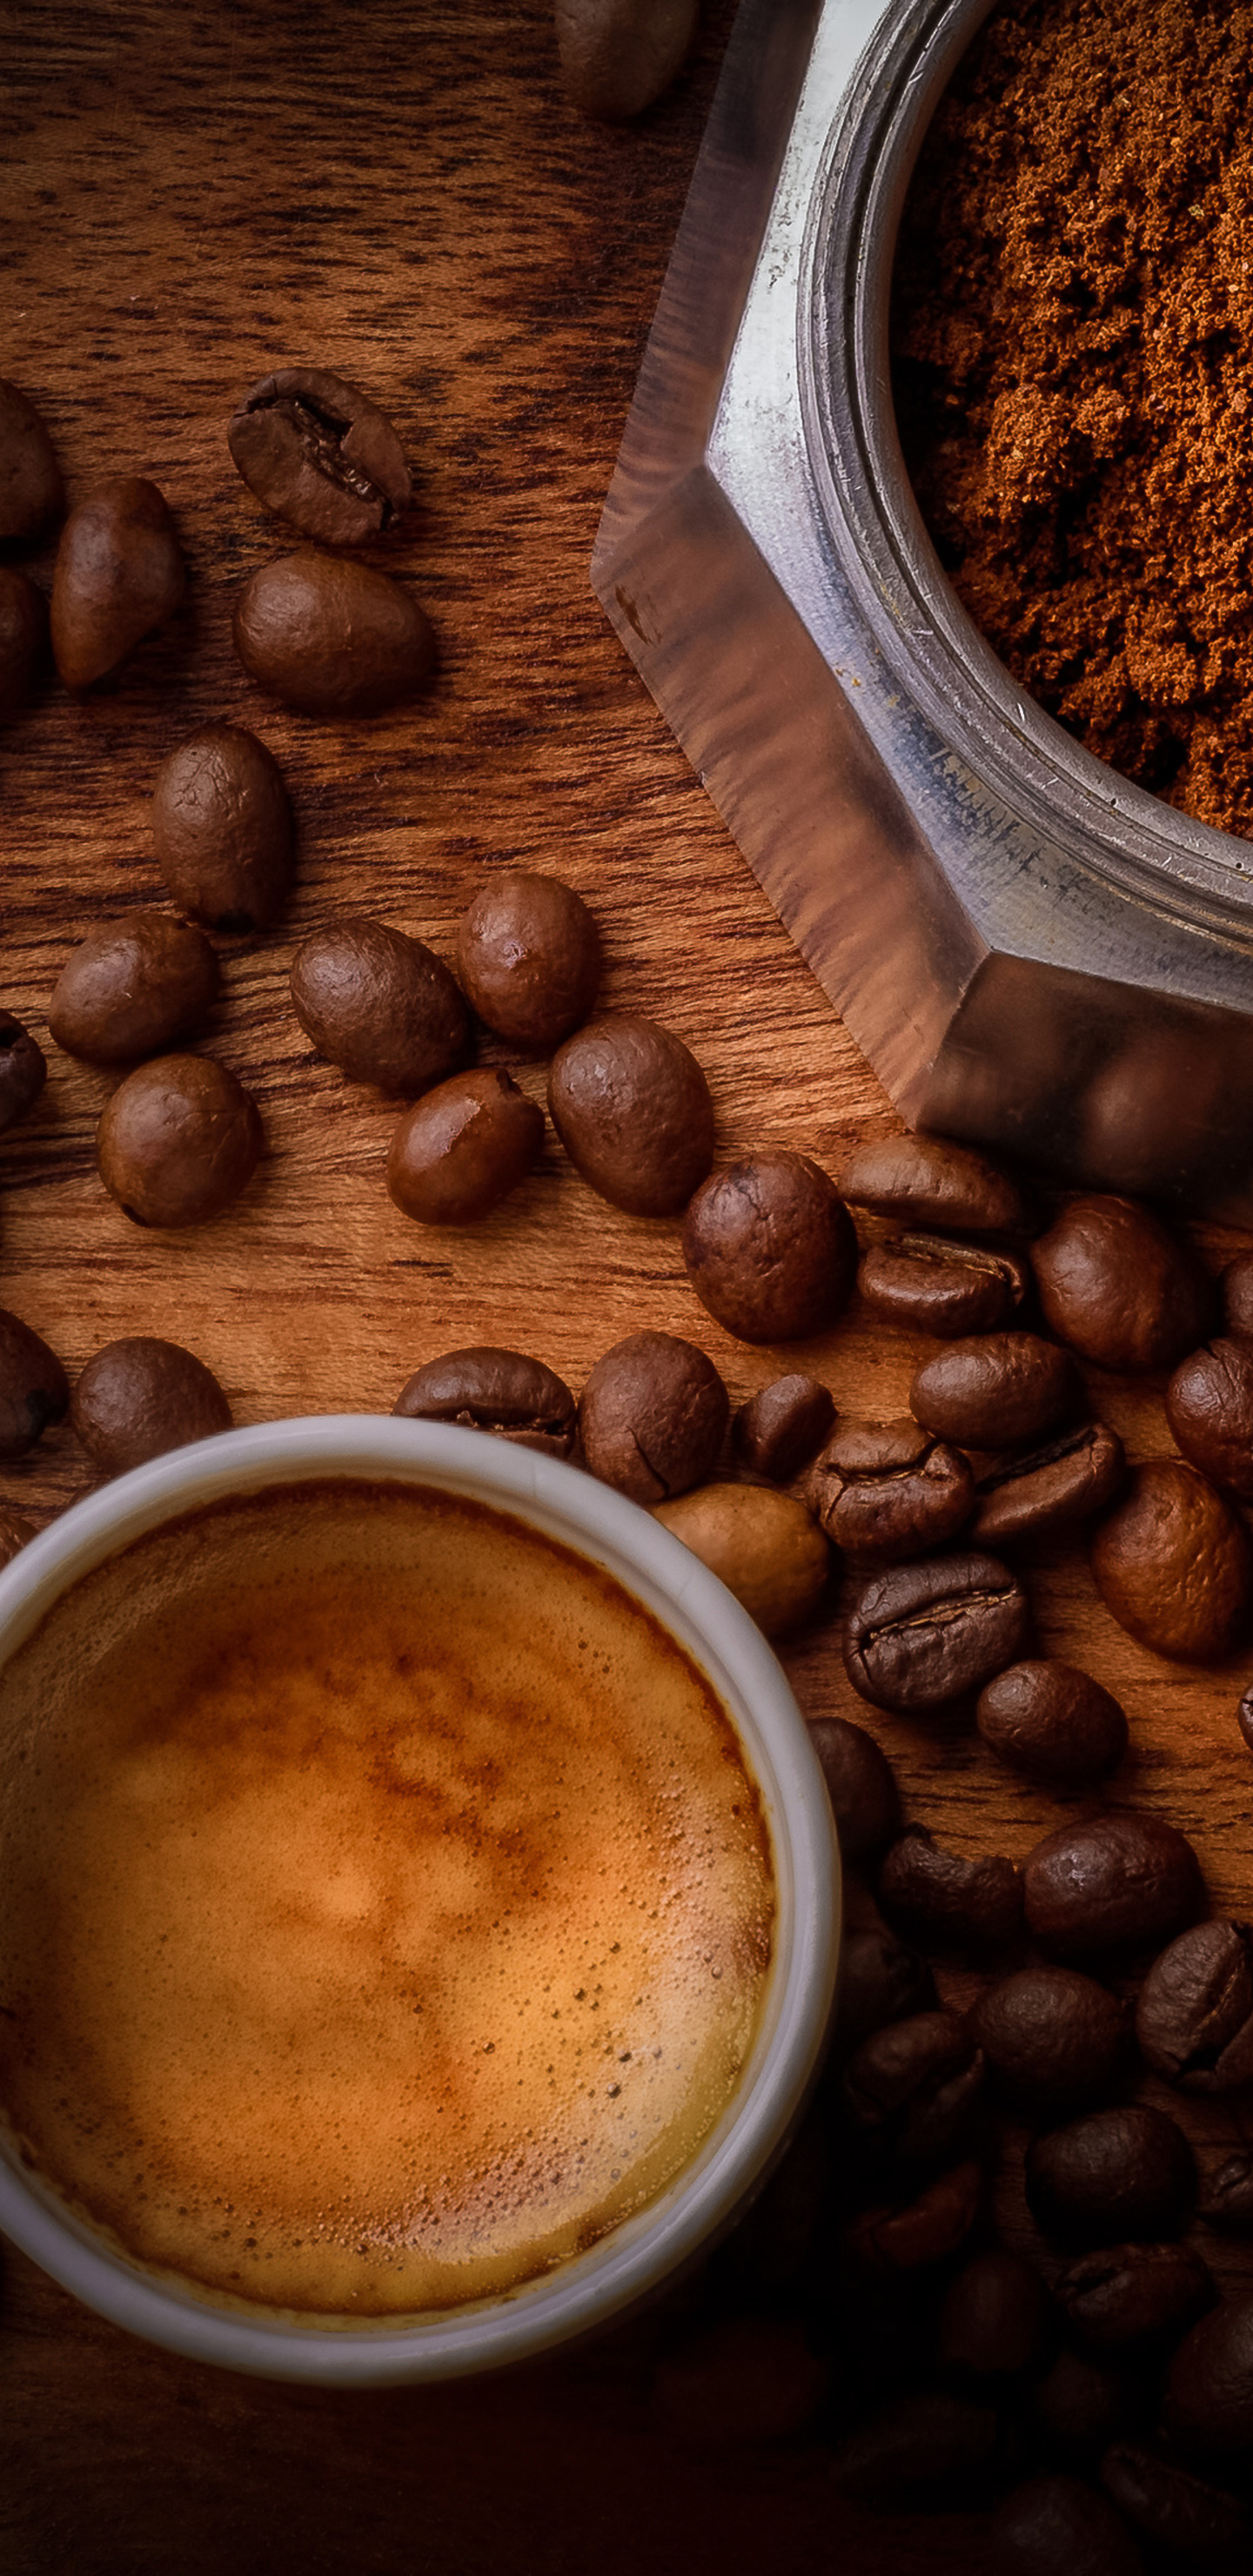 1440x2960 Coffee Beside Coffee Beans Samsung Galaxy Note 9 8 S9 S8 S8 Qhd Hd 4k Wallpapers Images Backgrounds Photos And Pictures